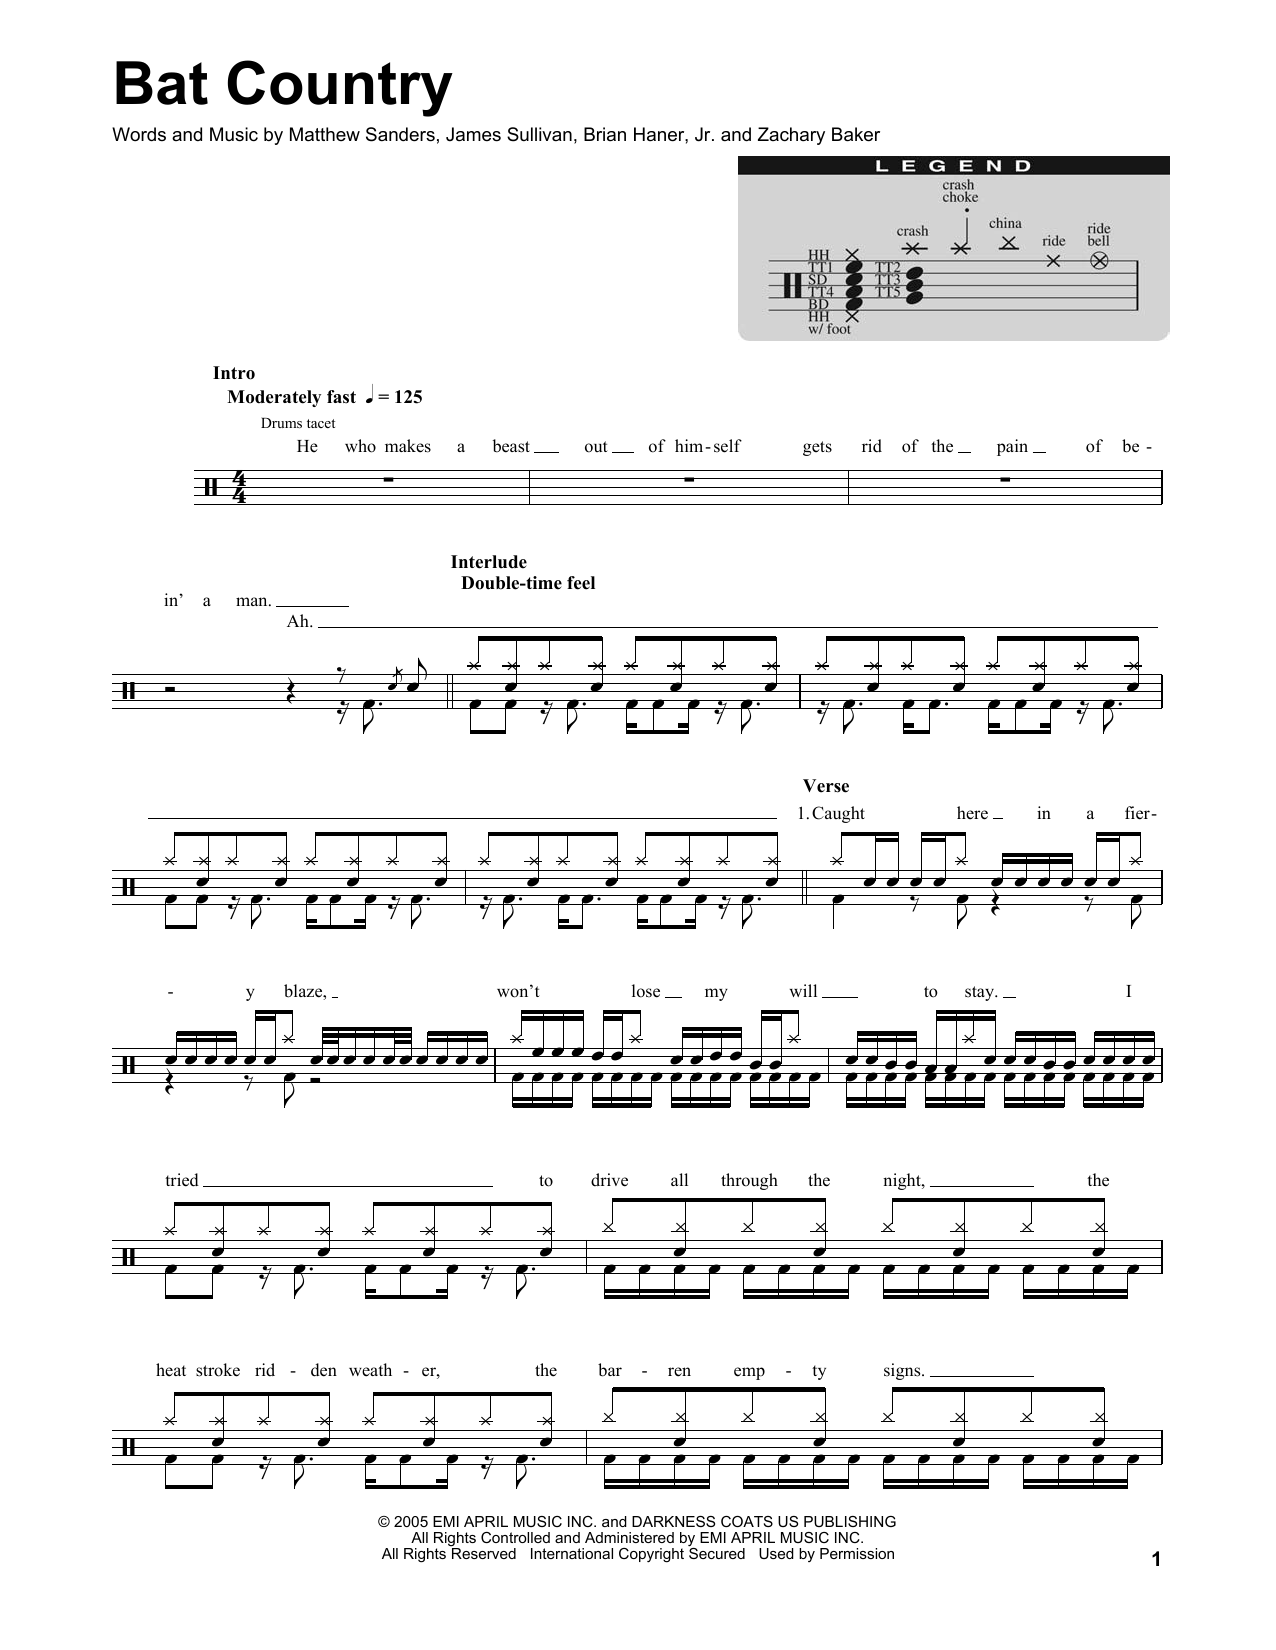 Bat Country Sheet Music